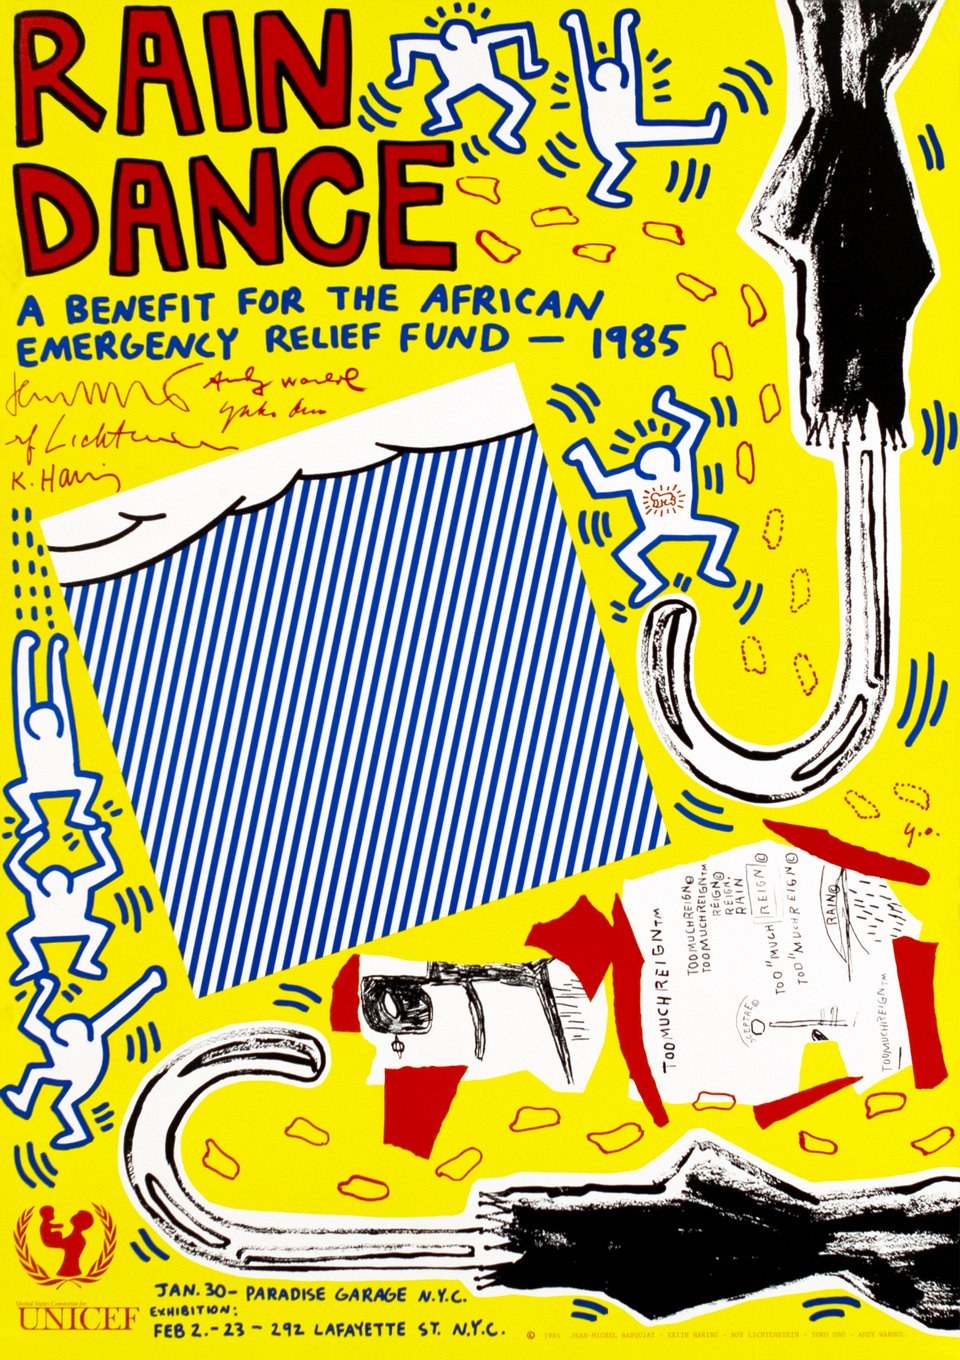 Rain Dance, a benefit for the african emergency relief fund - 1985 – Vintage poster – Keith HARING – 1985